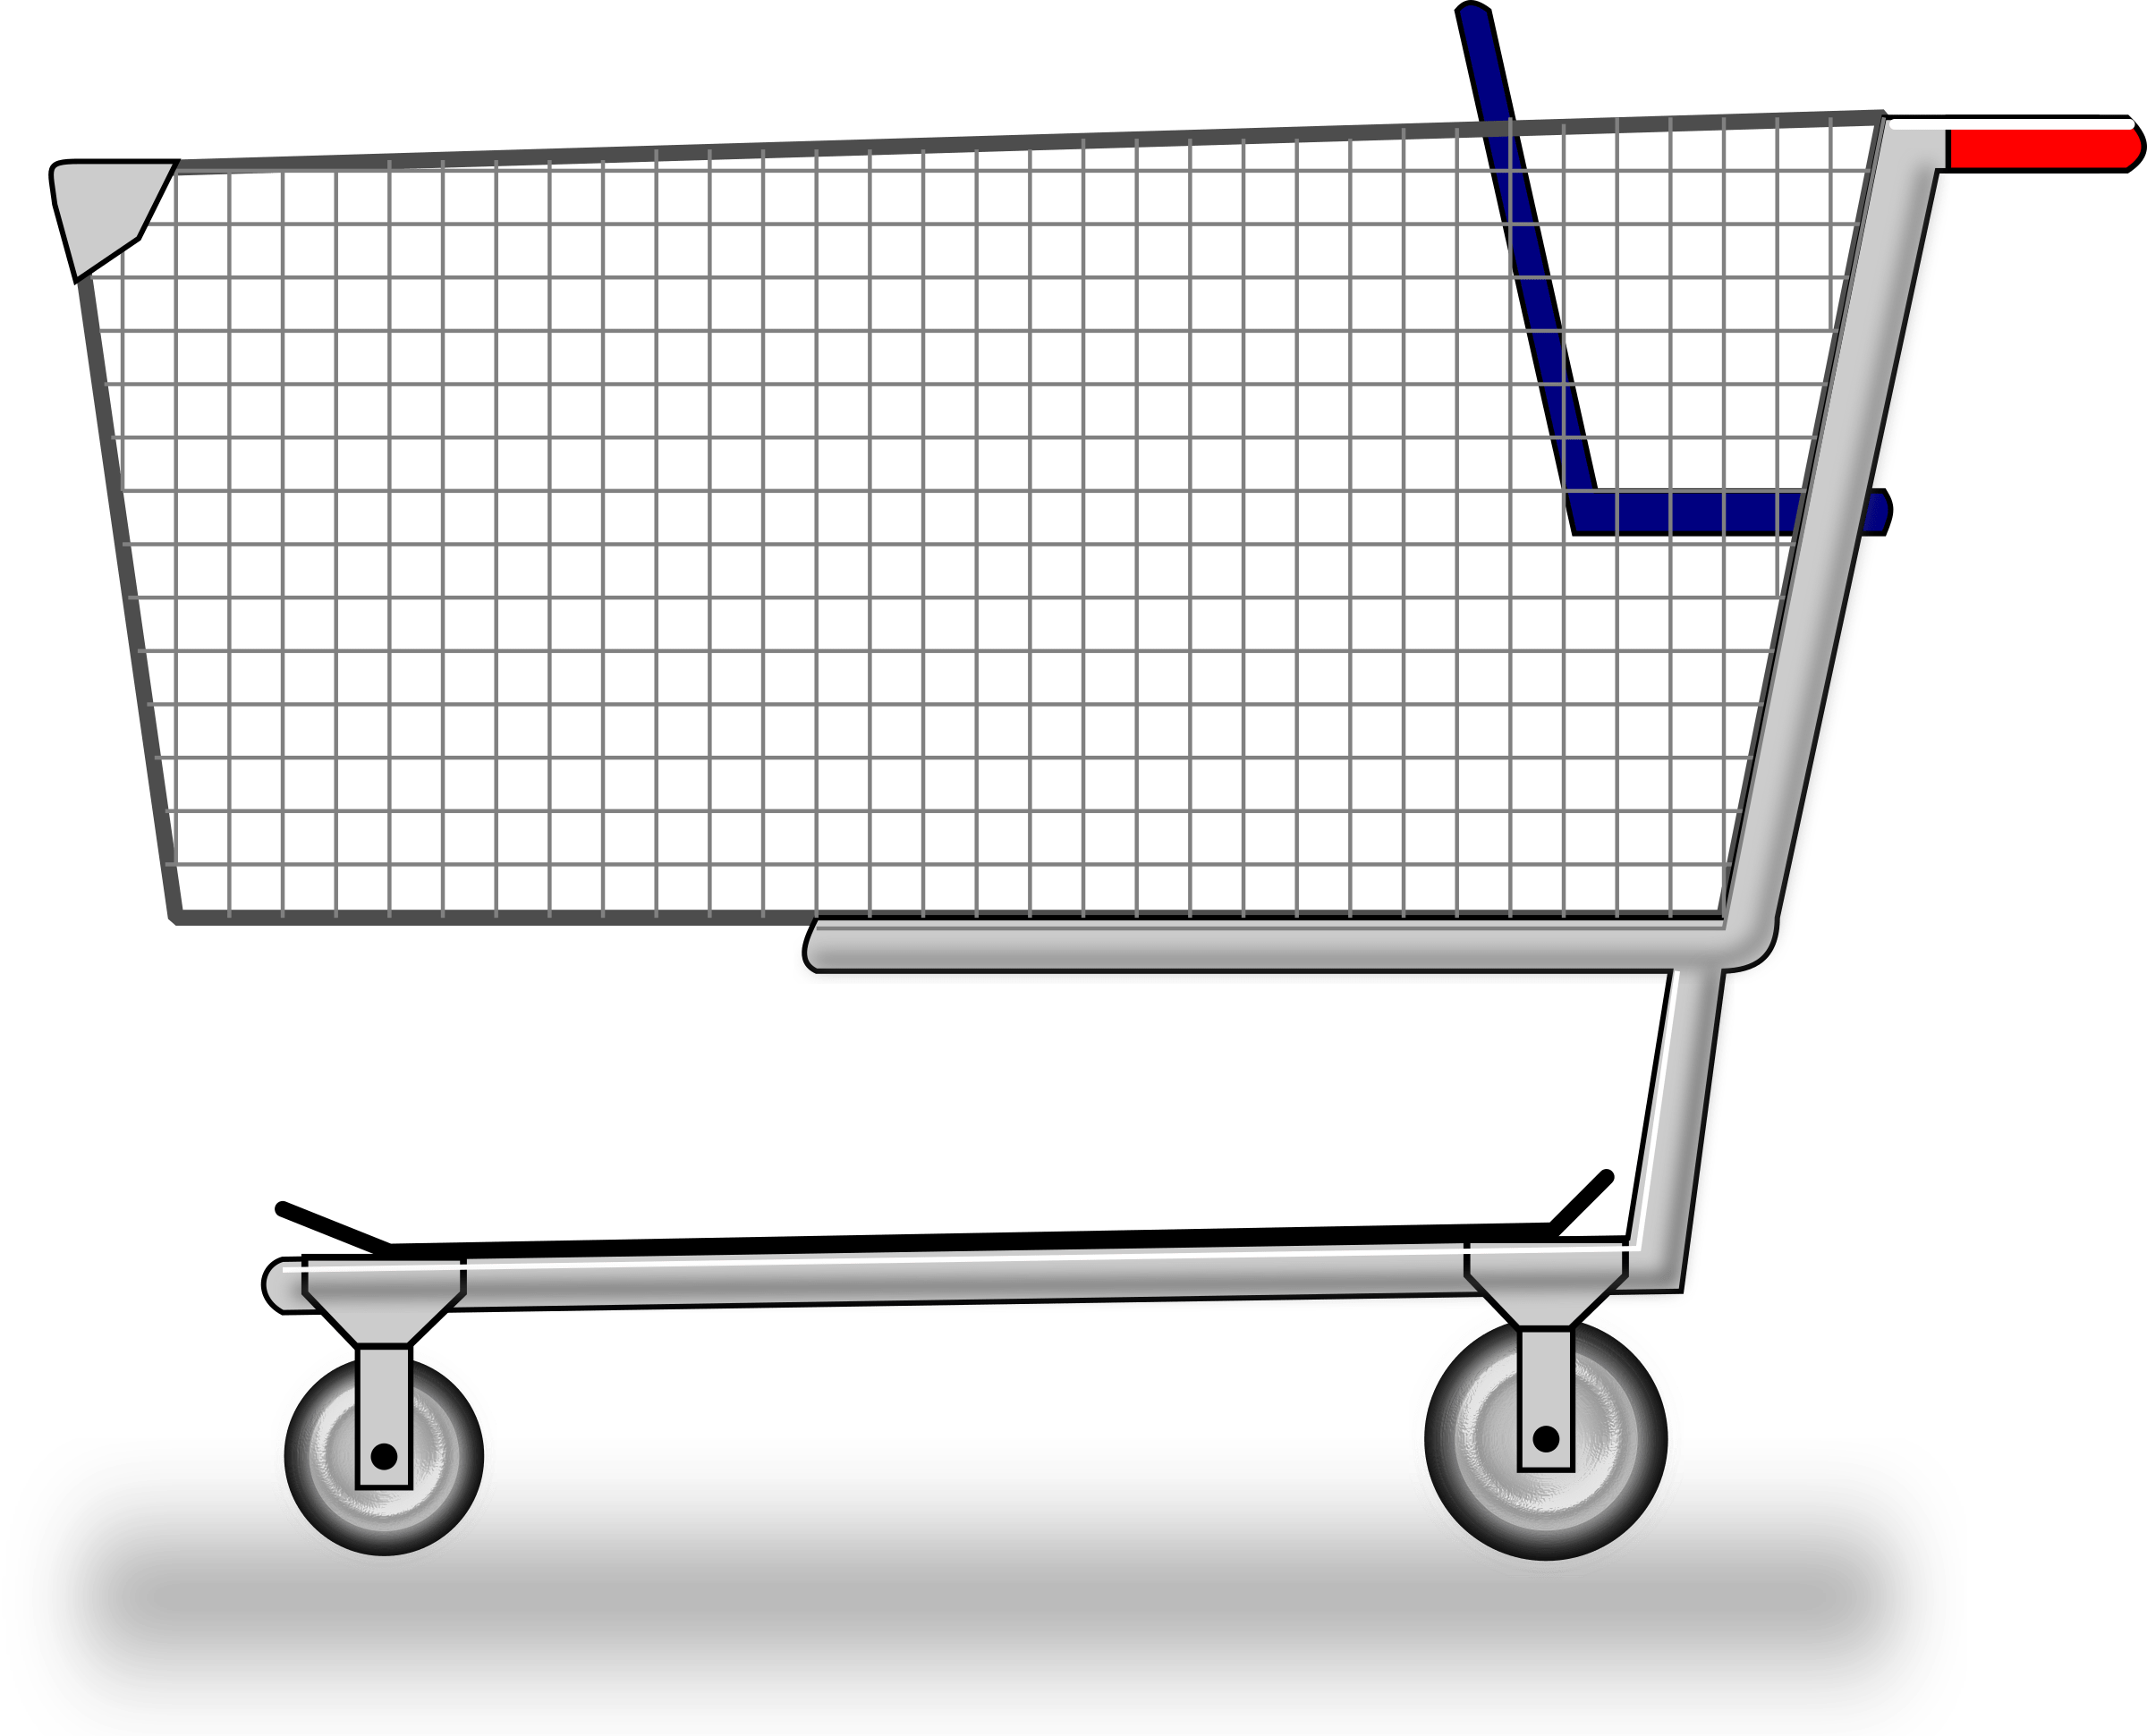 Grocery Clipart Shopping Supermarket Grocery Shopping